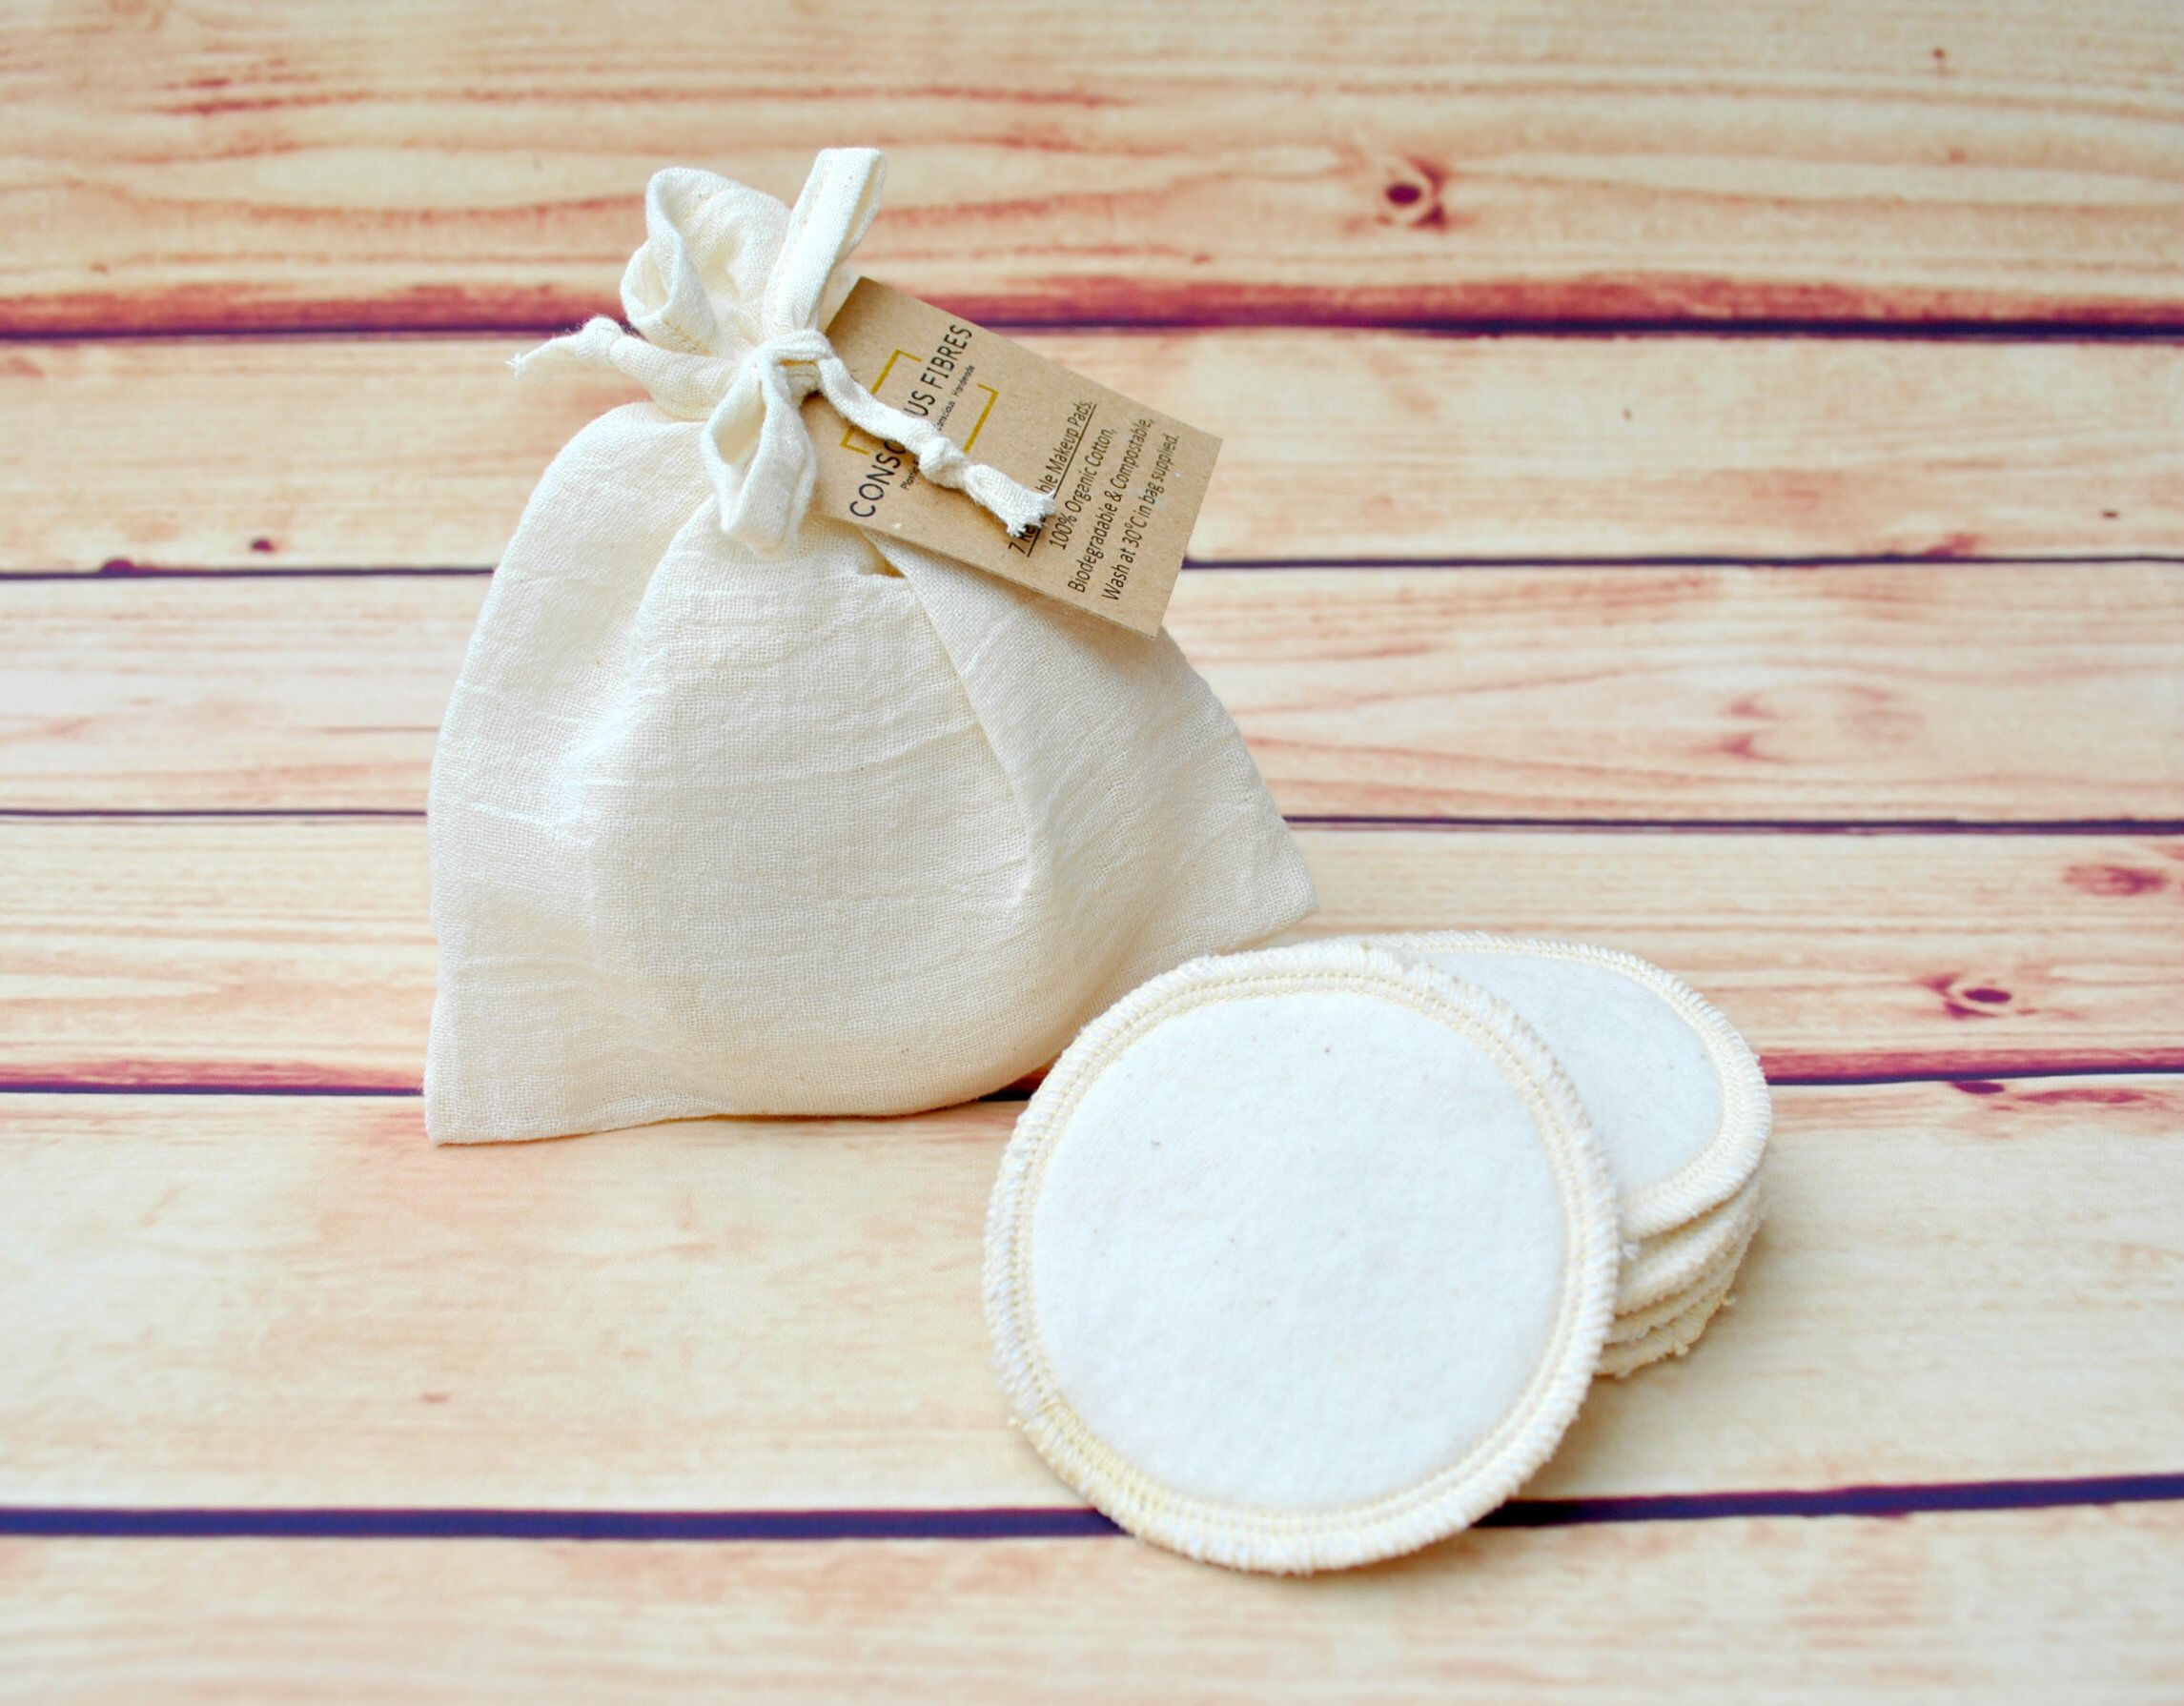 Makeup rounds zero waste pads organic cotton plastic free